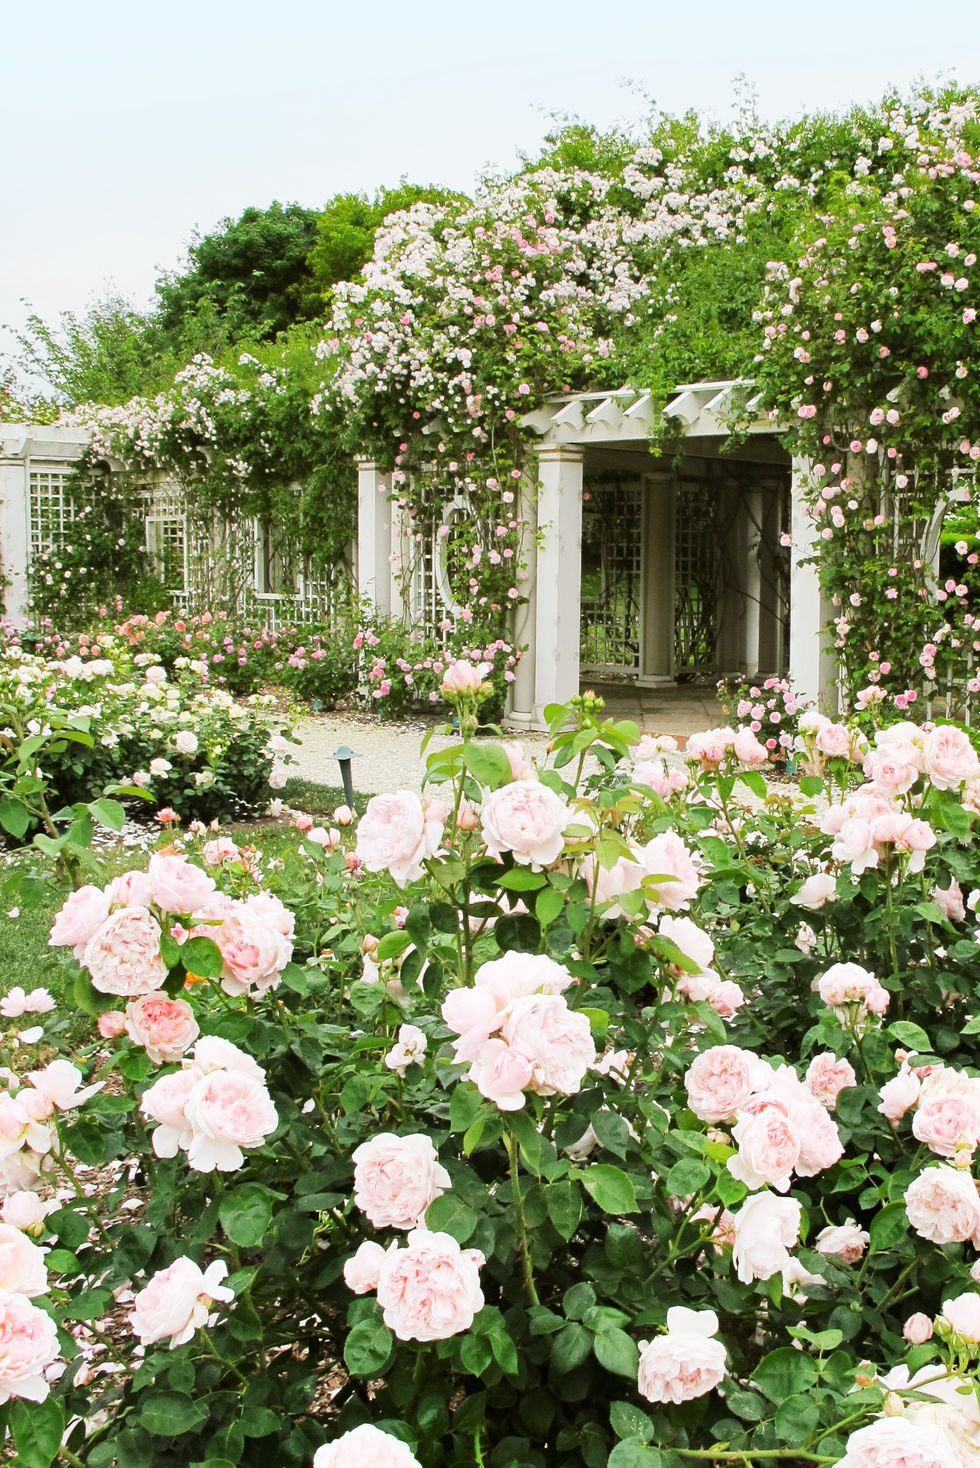 15 Pergola Ideas That Ll Turn Any Outdoor Space Into A Majestic Escape In 2021 Rose Garden Landscape Rose Garden Design Garden Landscape Design